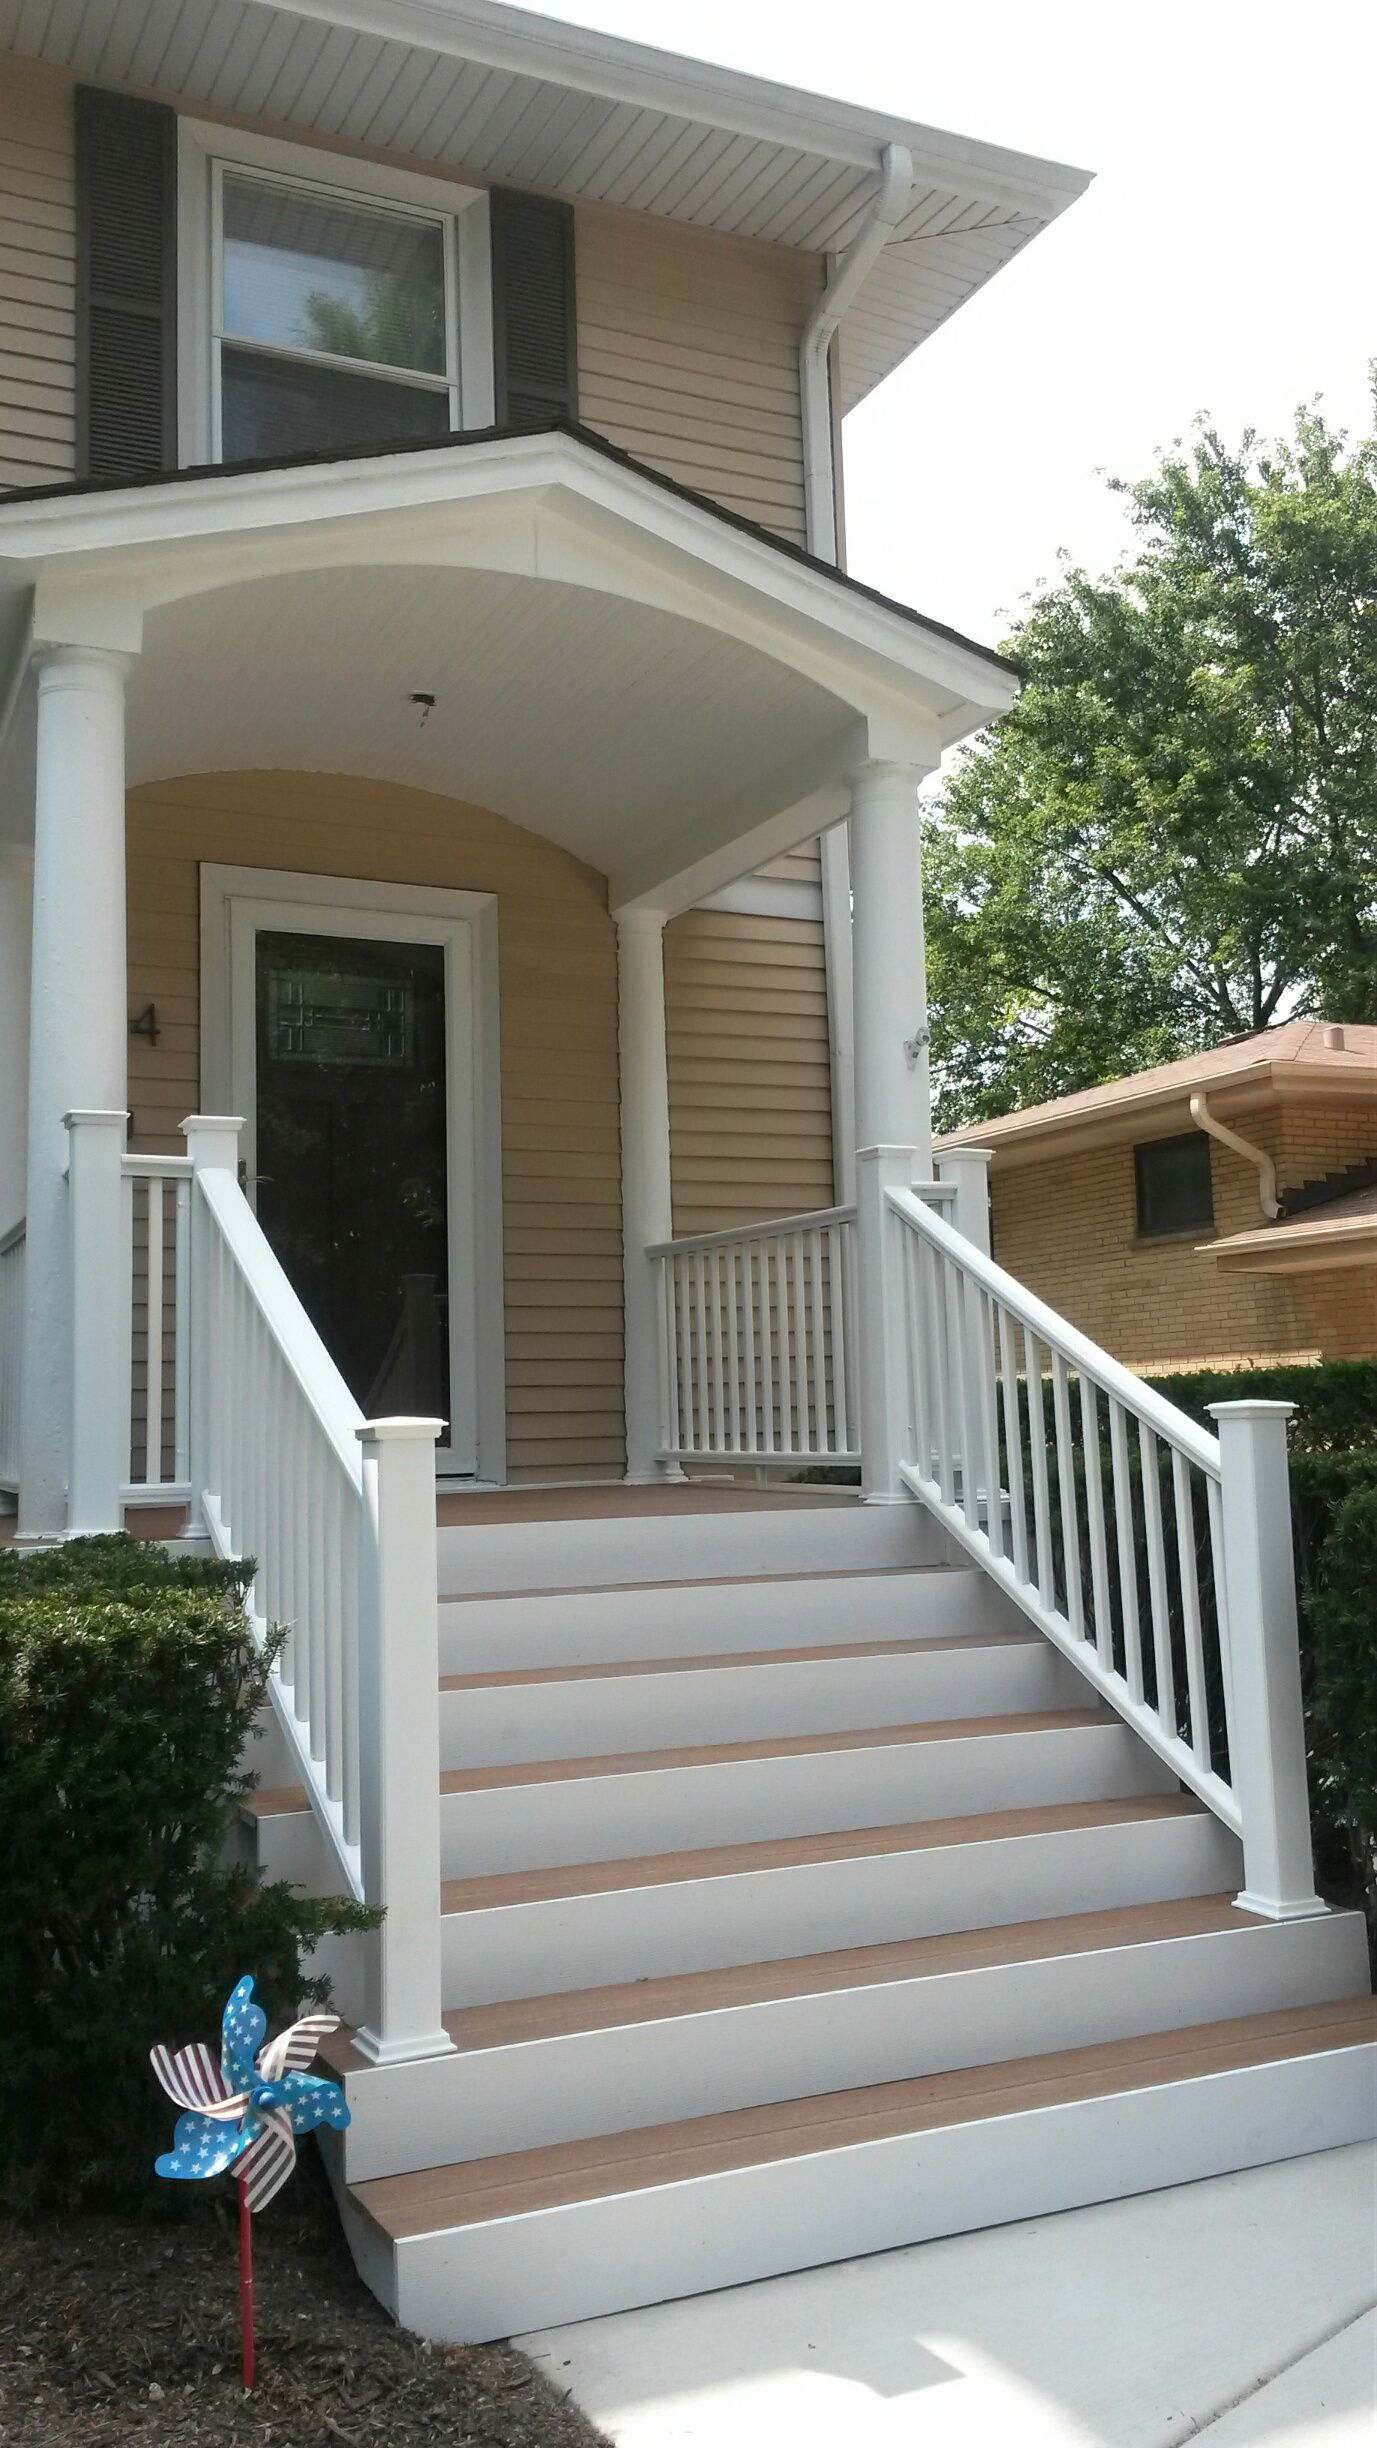 Beautiful new stairs using UltraDeck composite materials